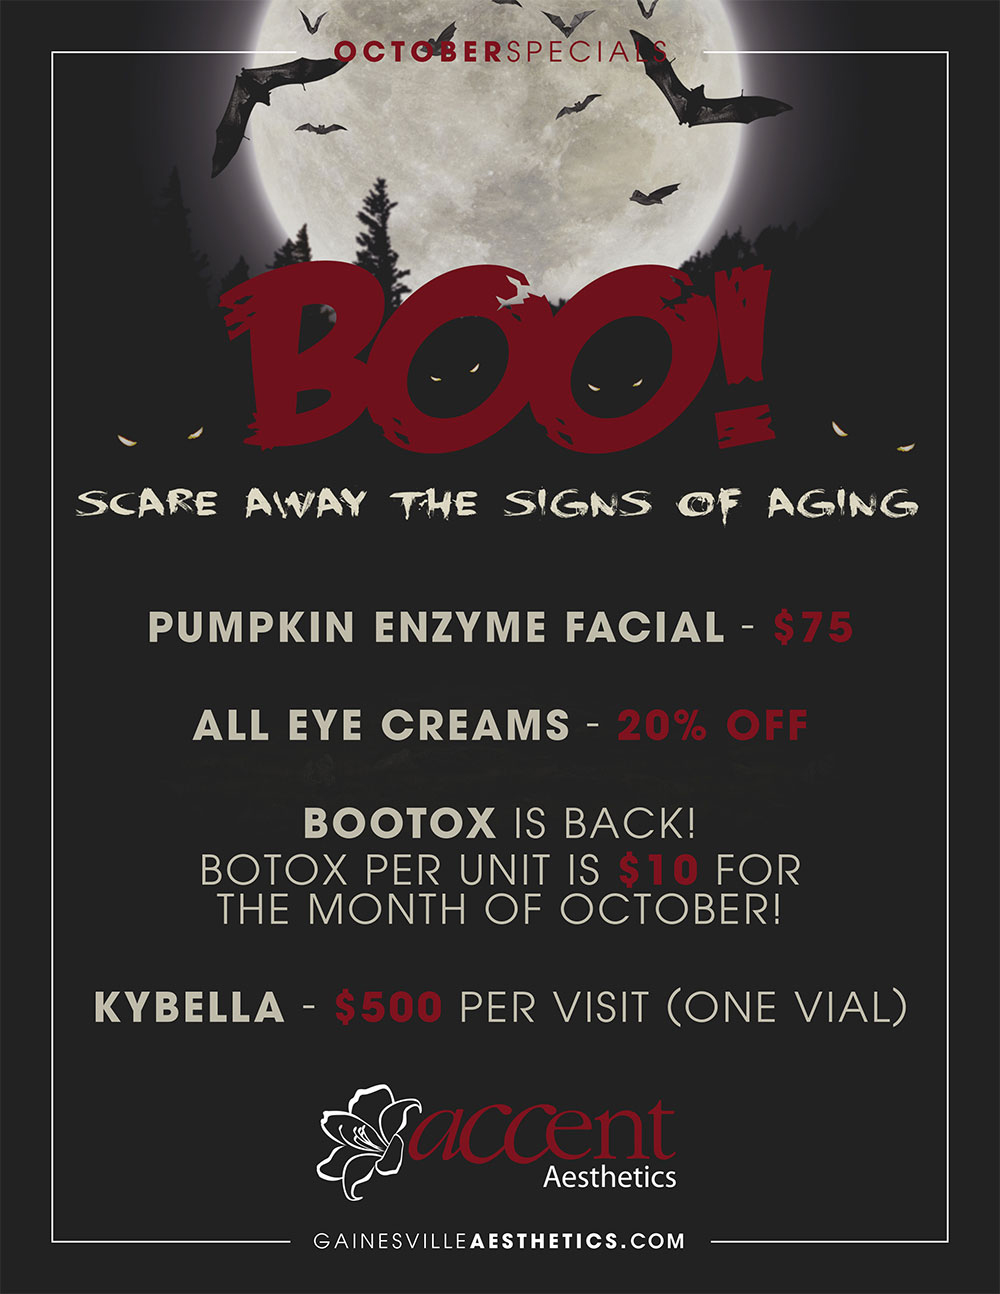 October 2016 MedSpa Specials in Gainesville, FL